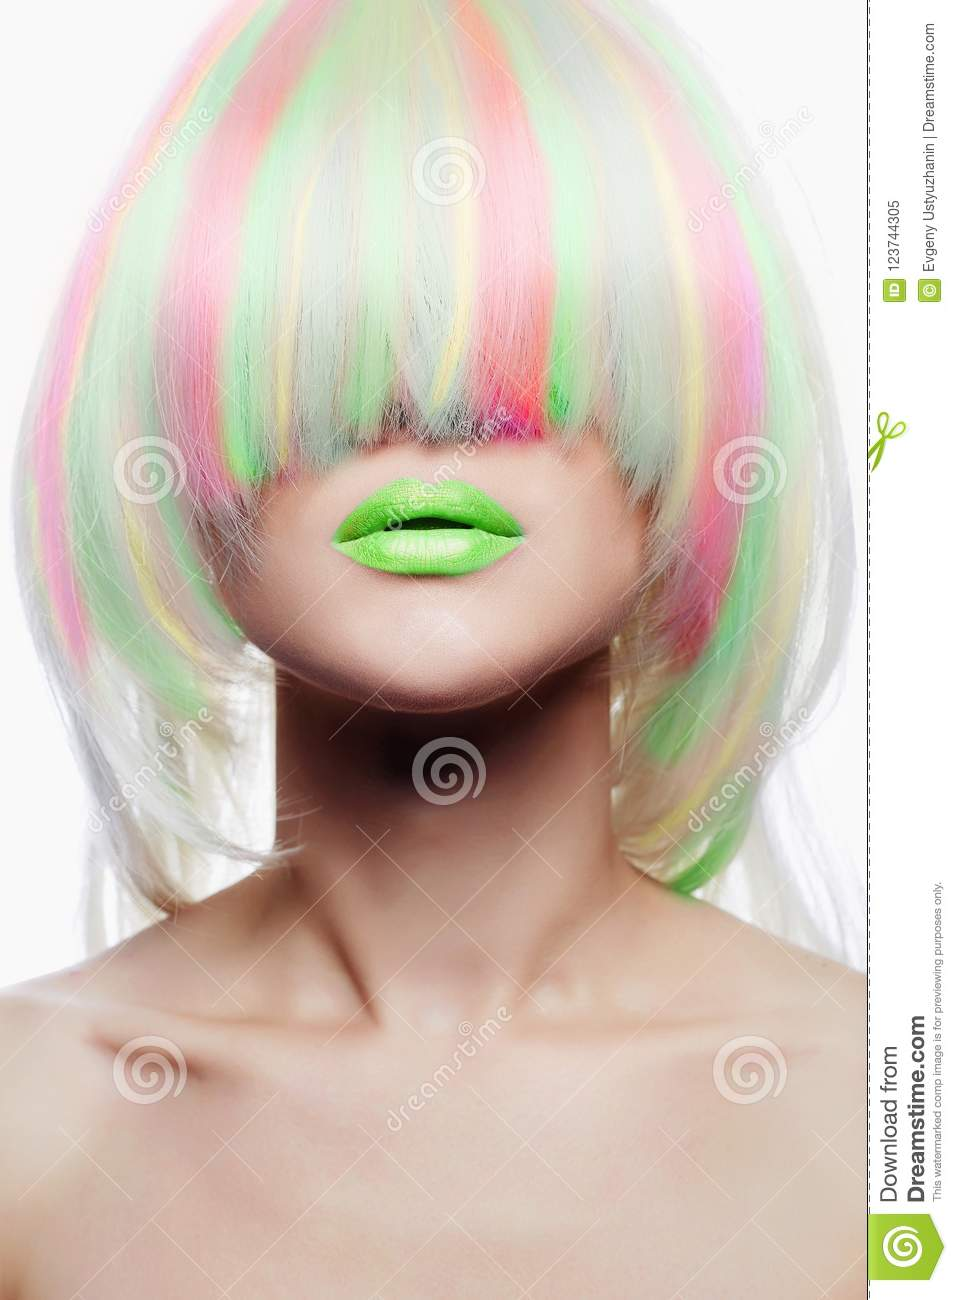 Rainbow Hairstyles Girl With Green Lips. Colorful Hair Stock Image ...